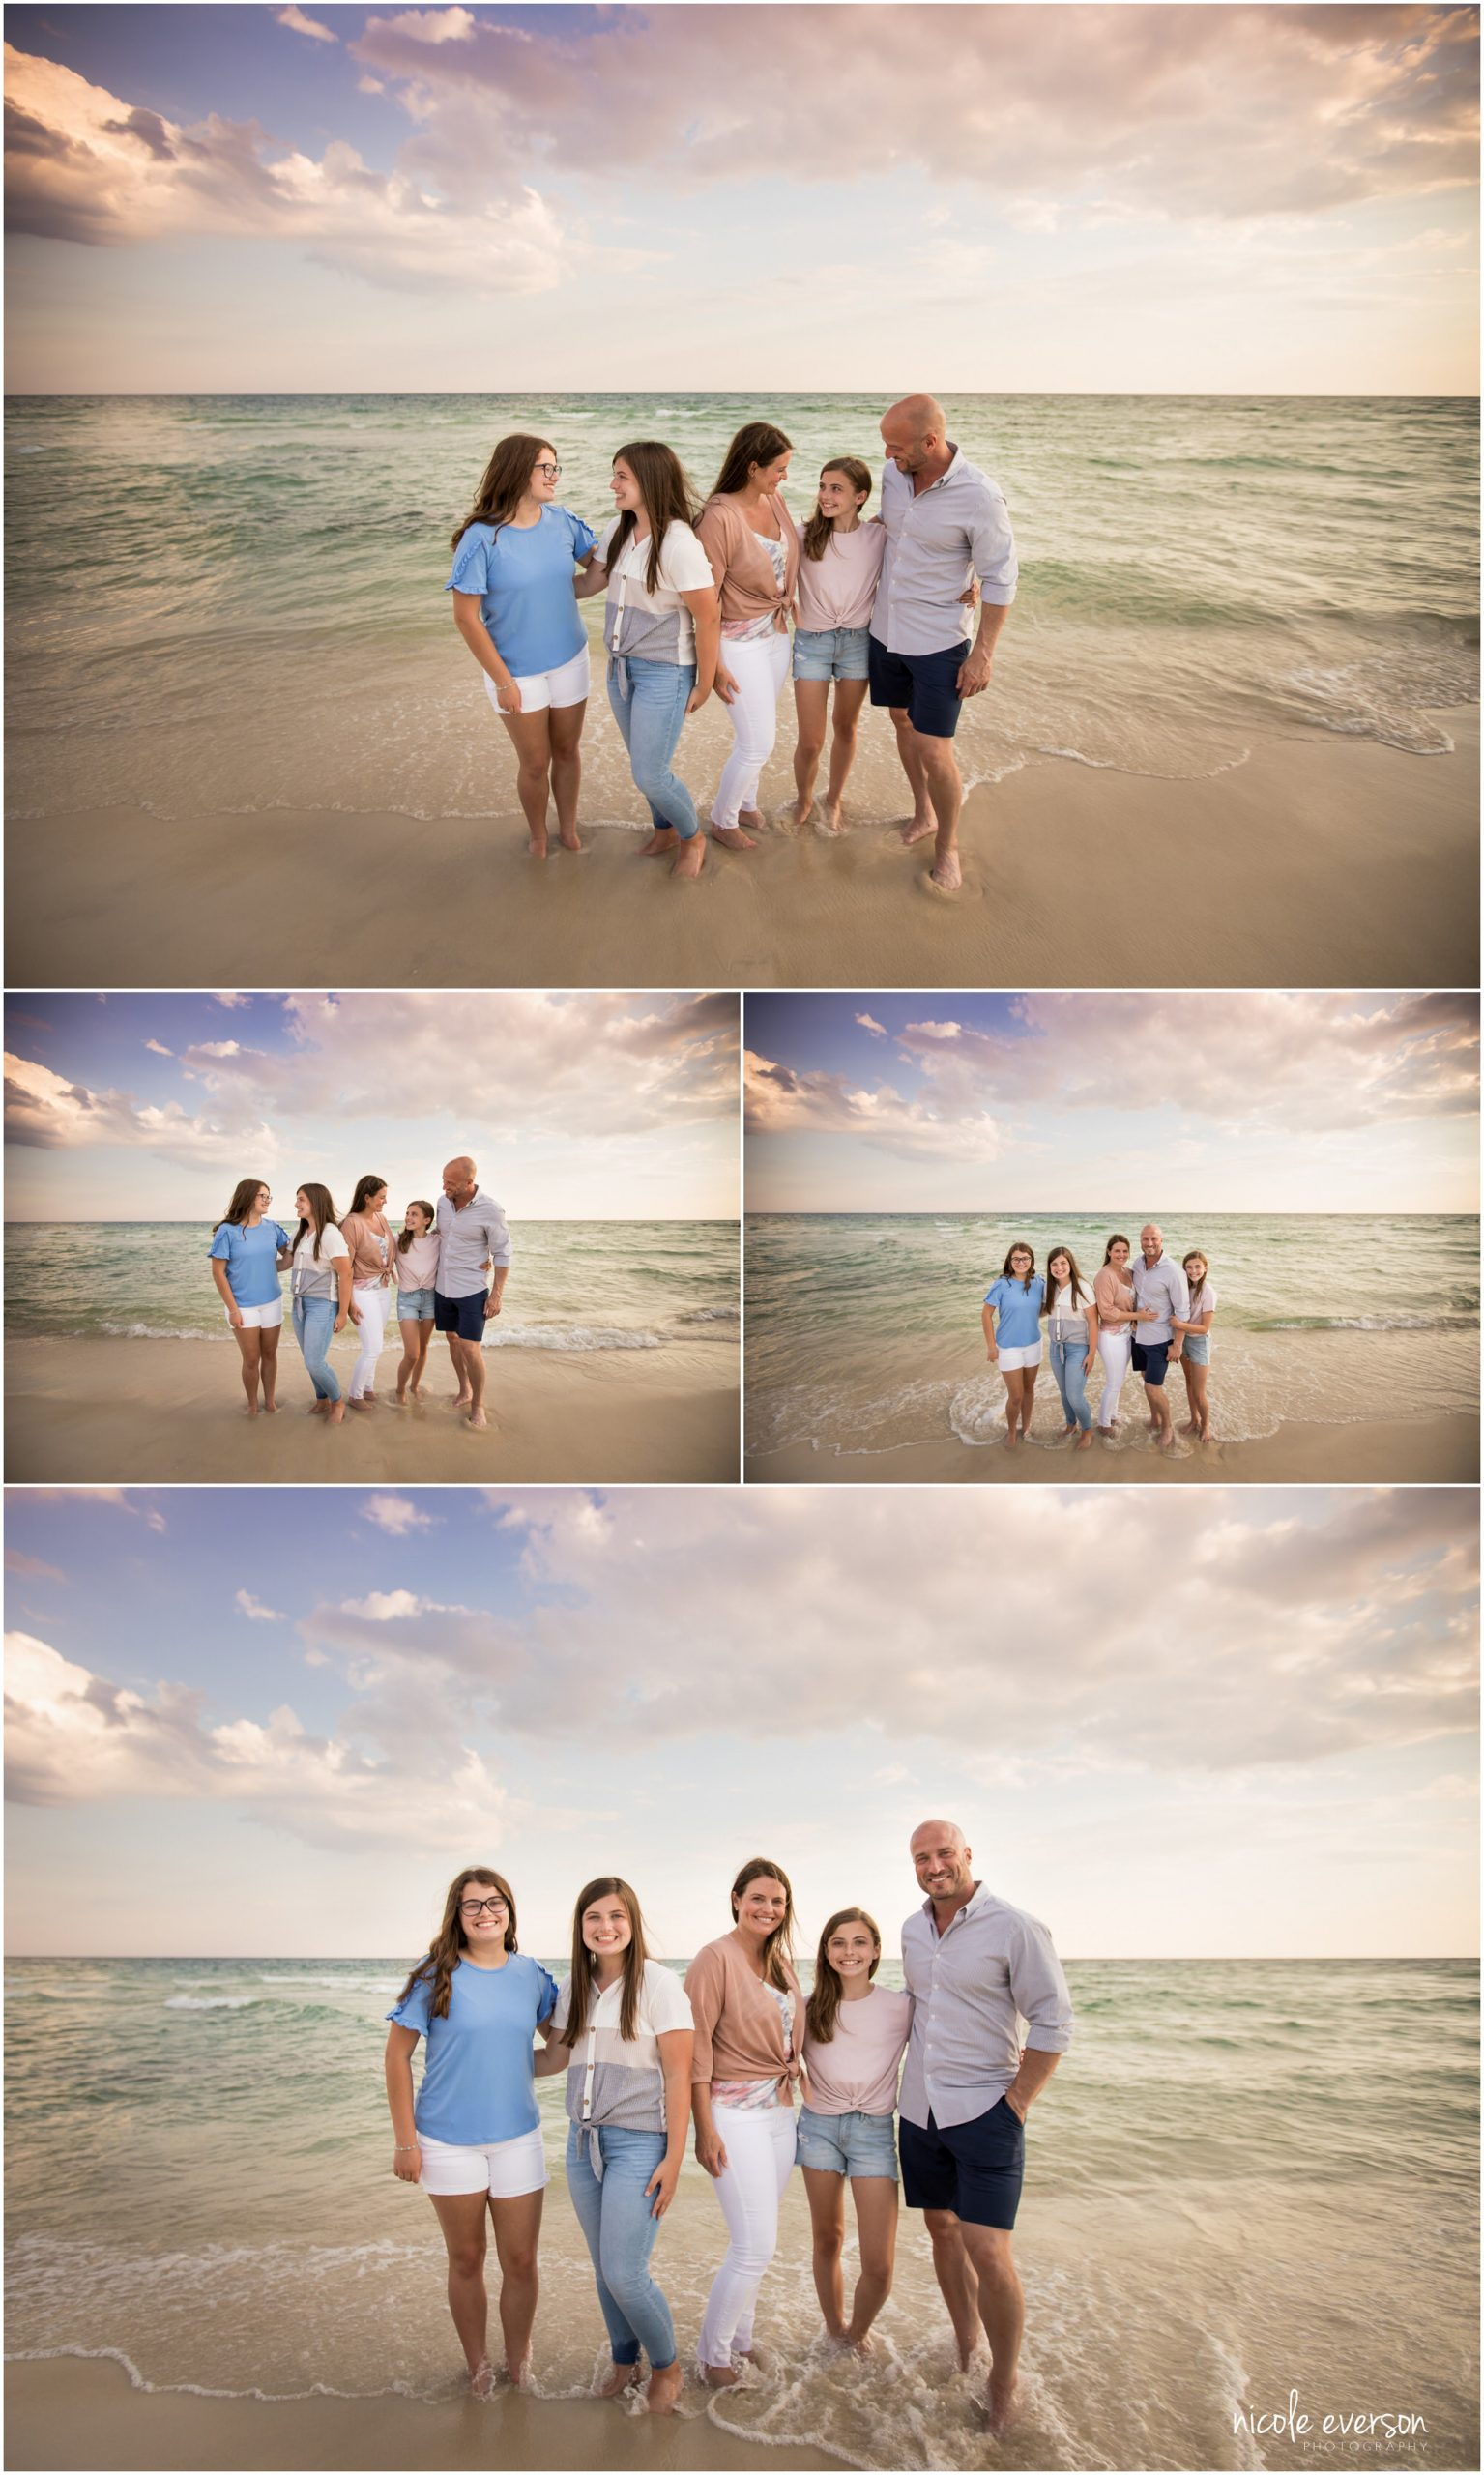 Laughing family on the beach. Rosemary Beach photographs. Nicole Everson Photography.